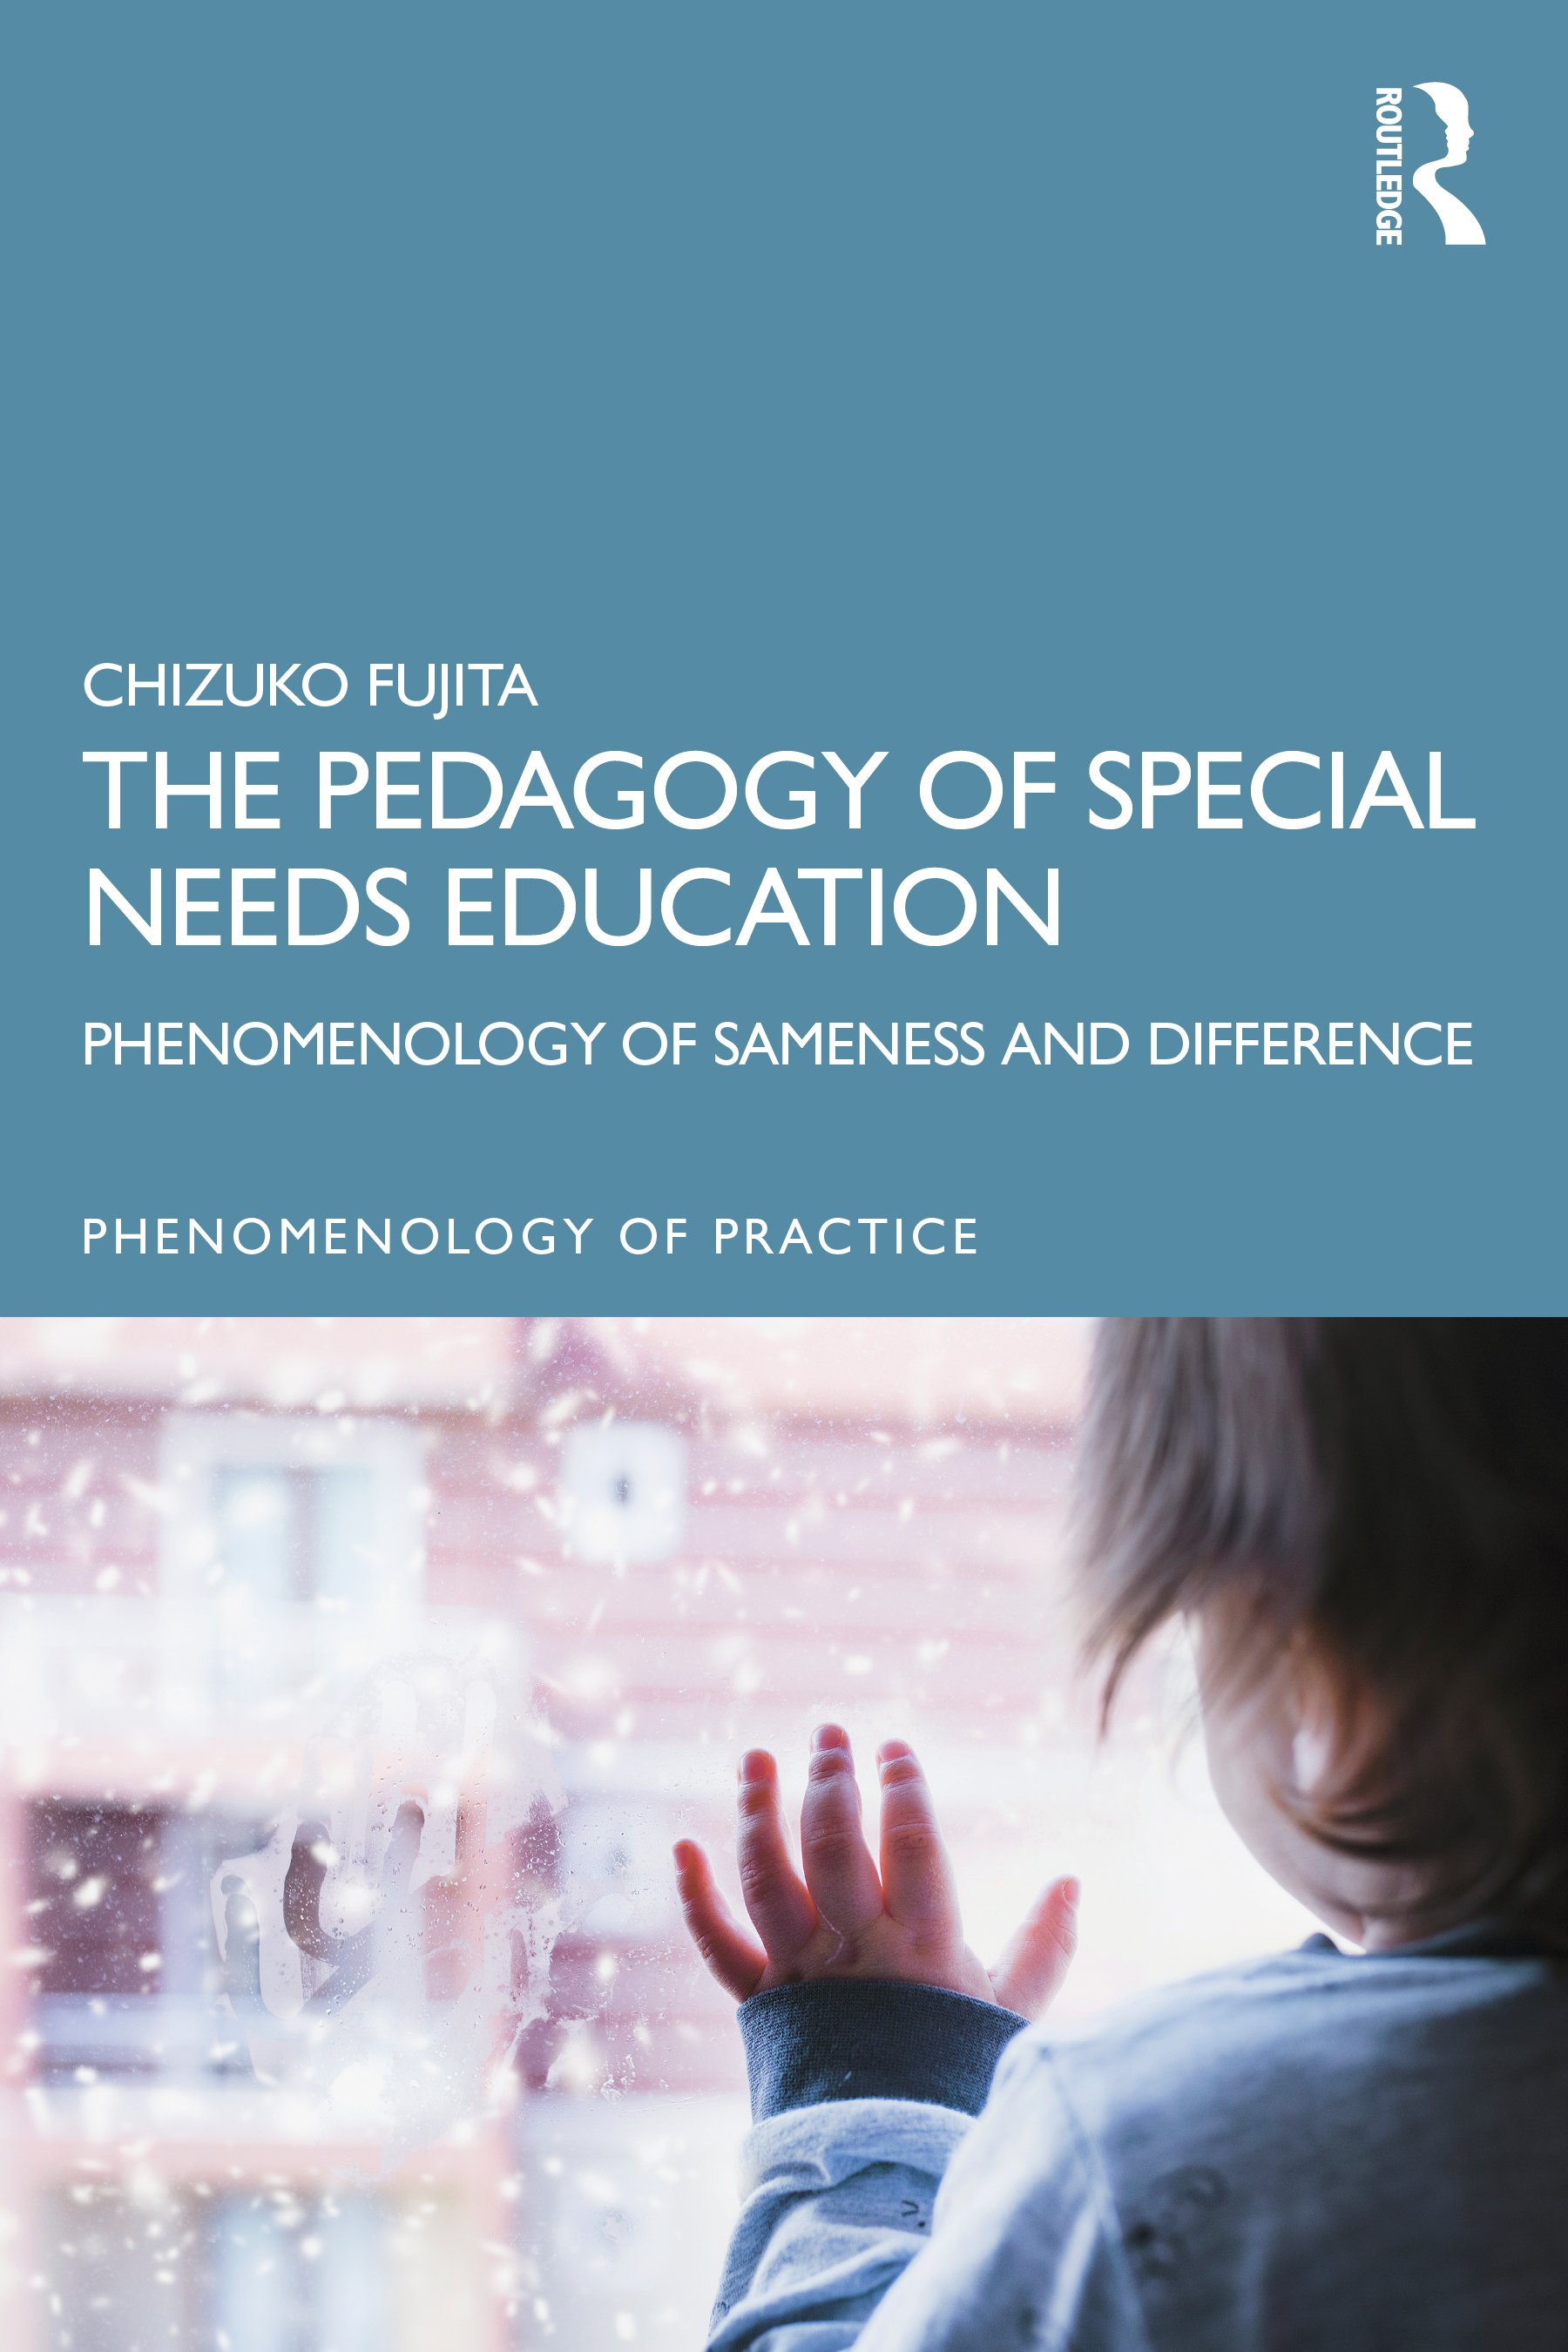 The Pedagogy of Special Needs Education